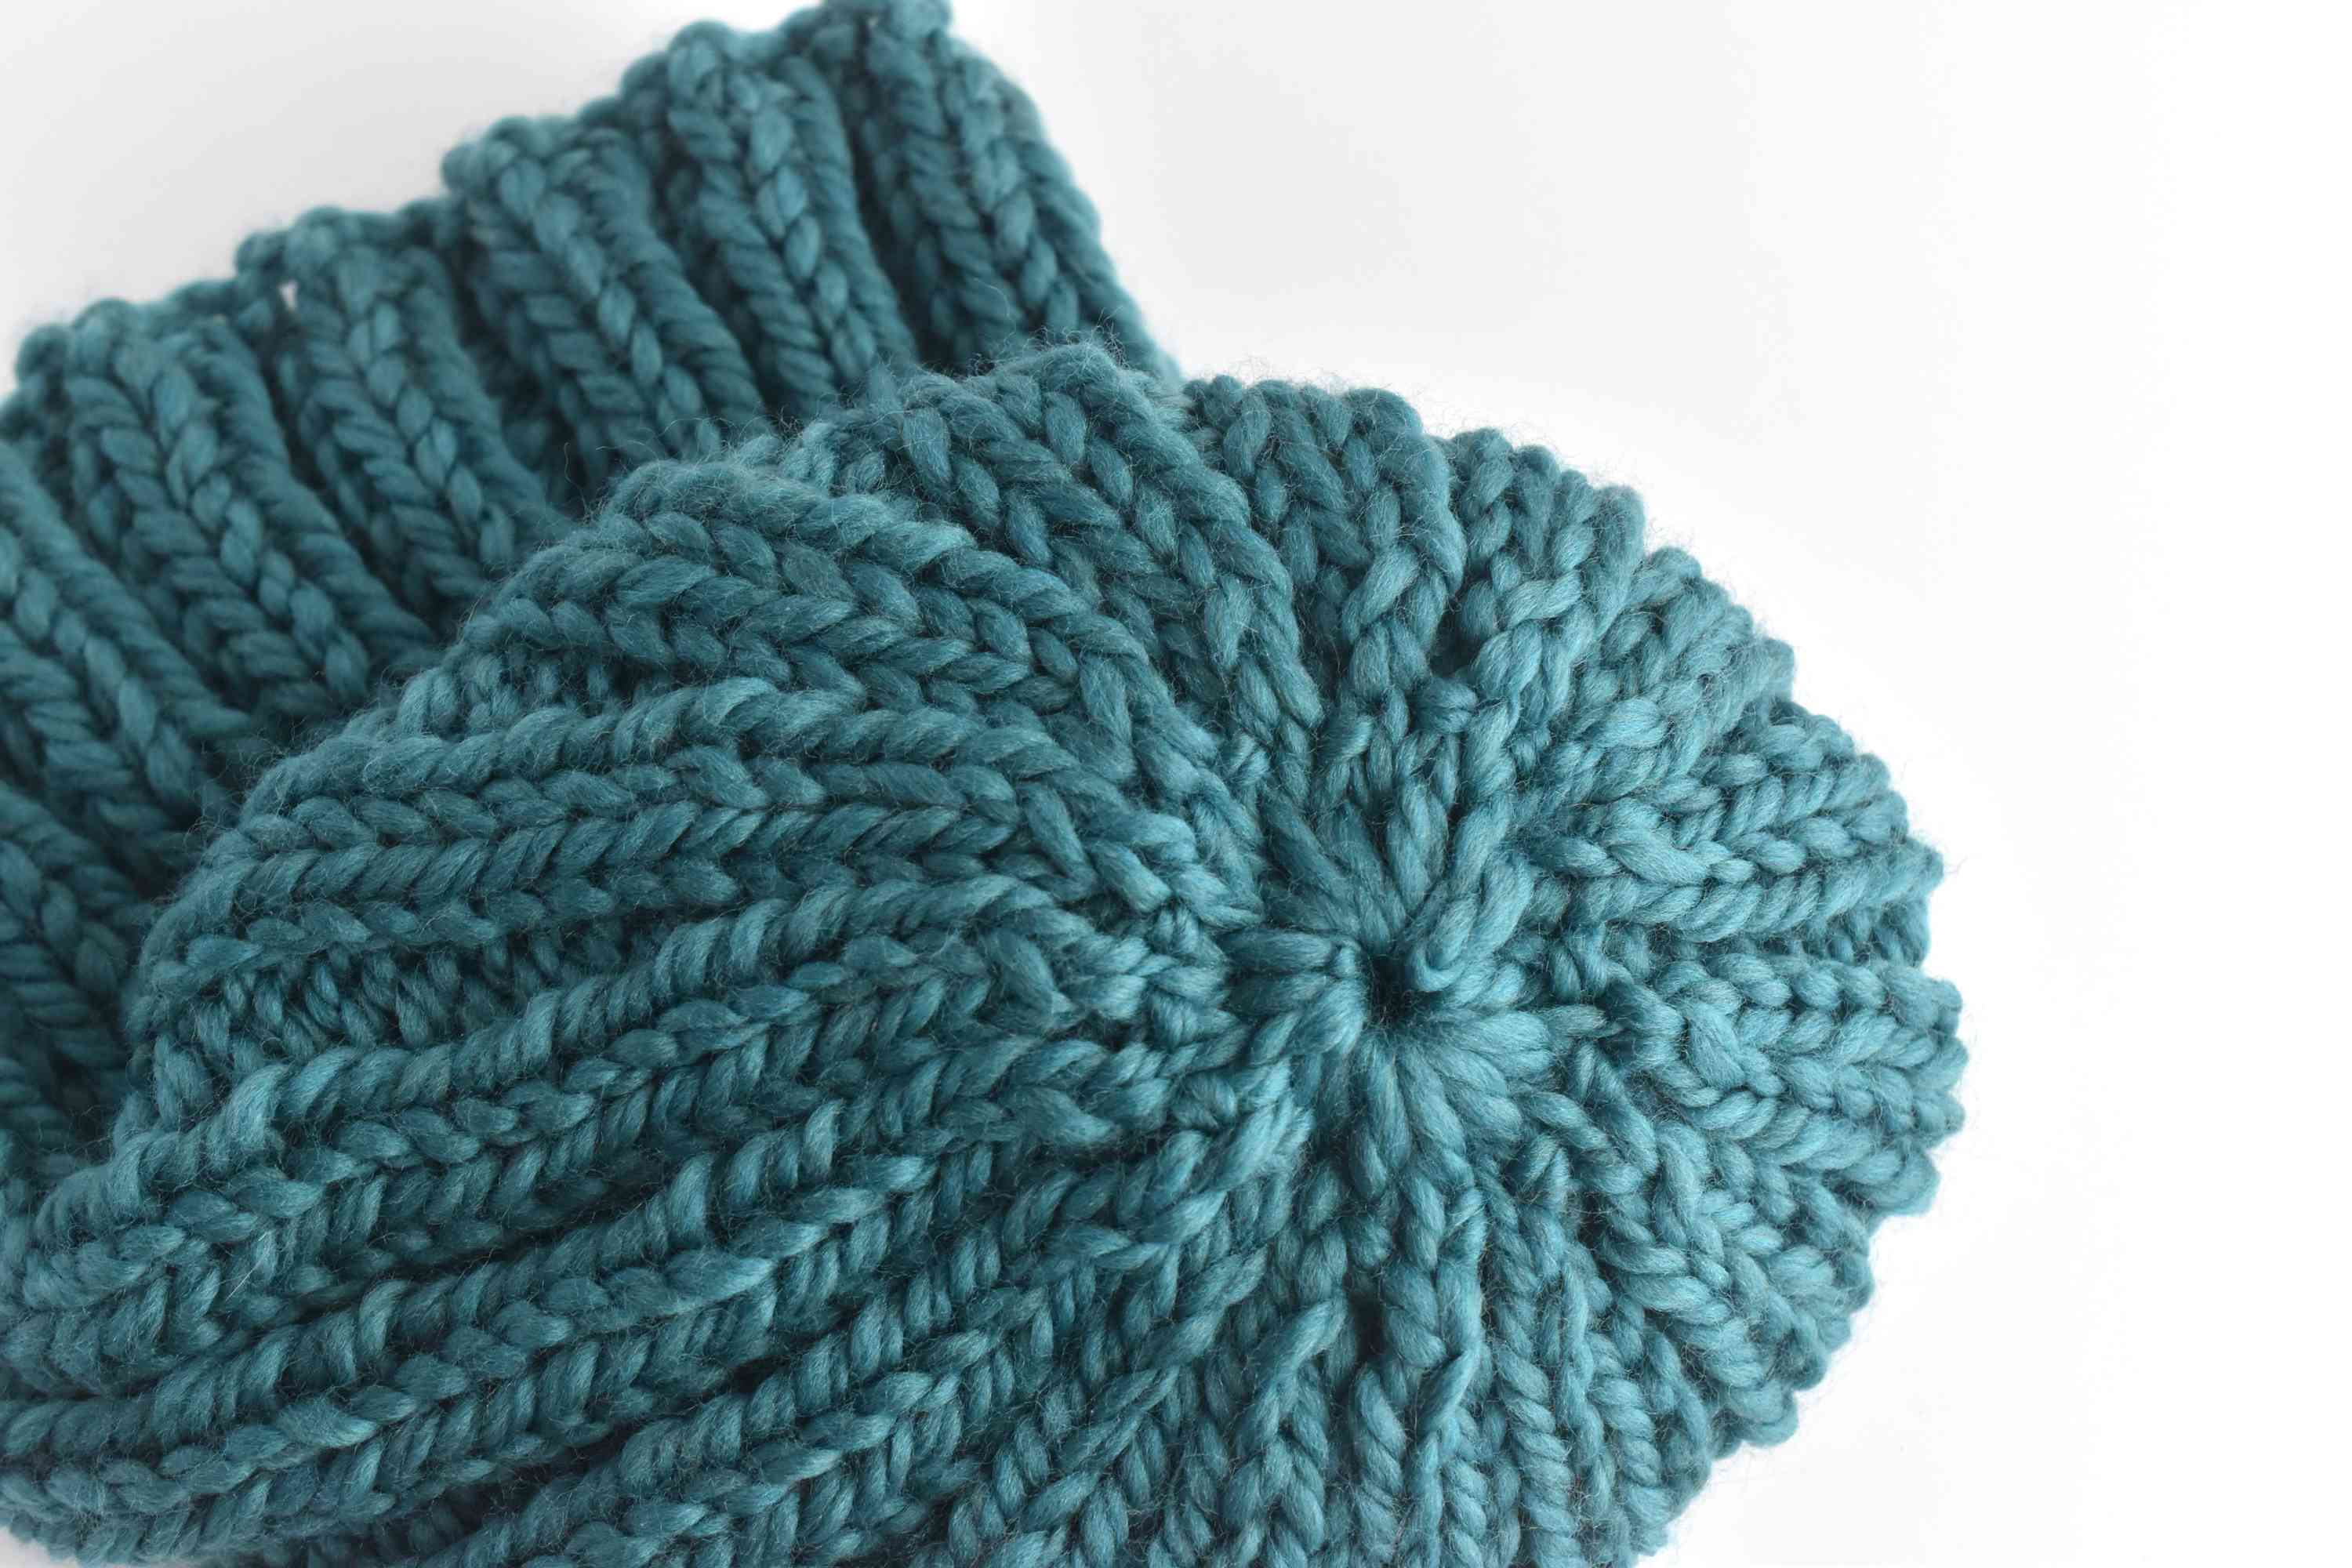 Top view of the hand knit ribbed beanie